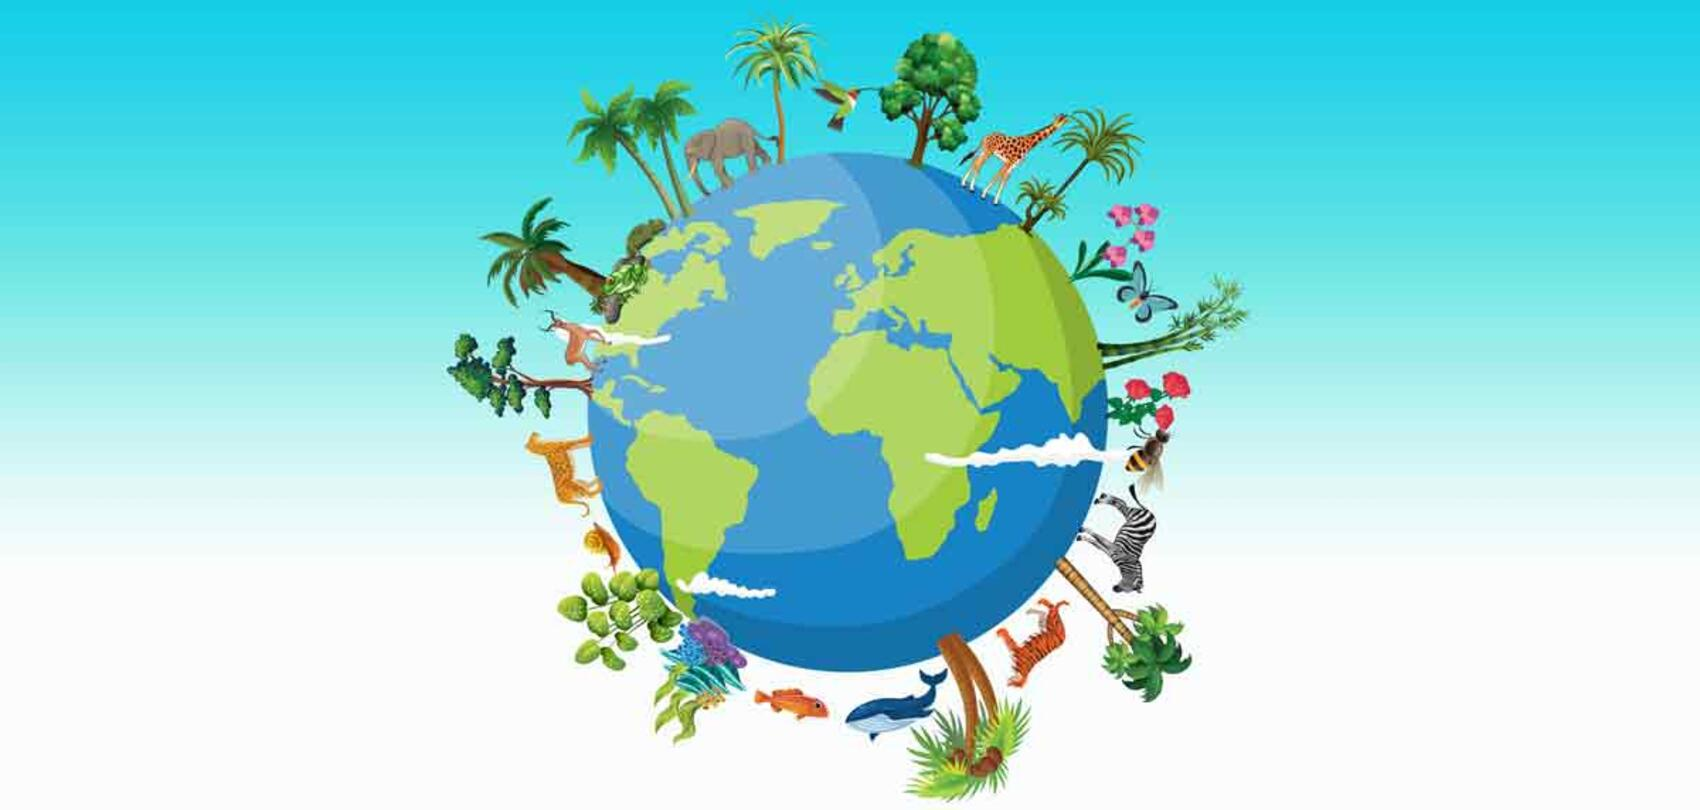 biodiversity-and-endangered-species-recent-advances-and-old-challenges-1000.jpg